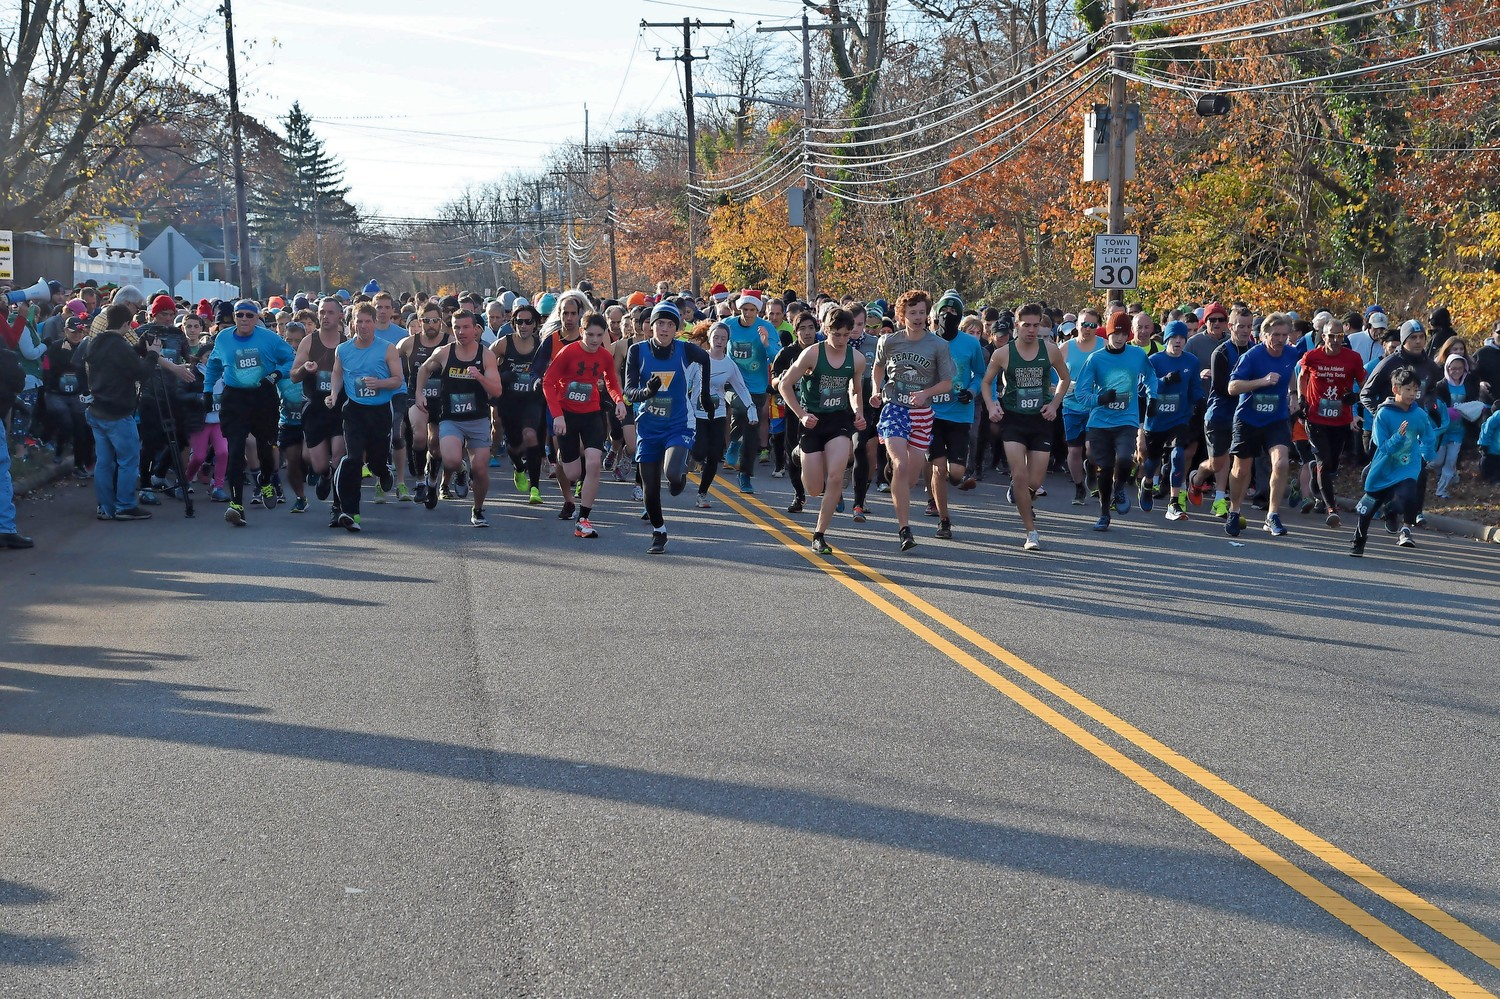 Hundreds of people lined up outside of Seaford High School for the 14th annual Hot Chocolate 5k Run on Dec. 2. The Seaford Wellness Council sponsored the event.